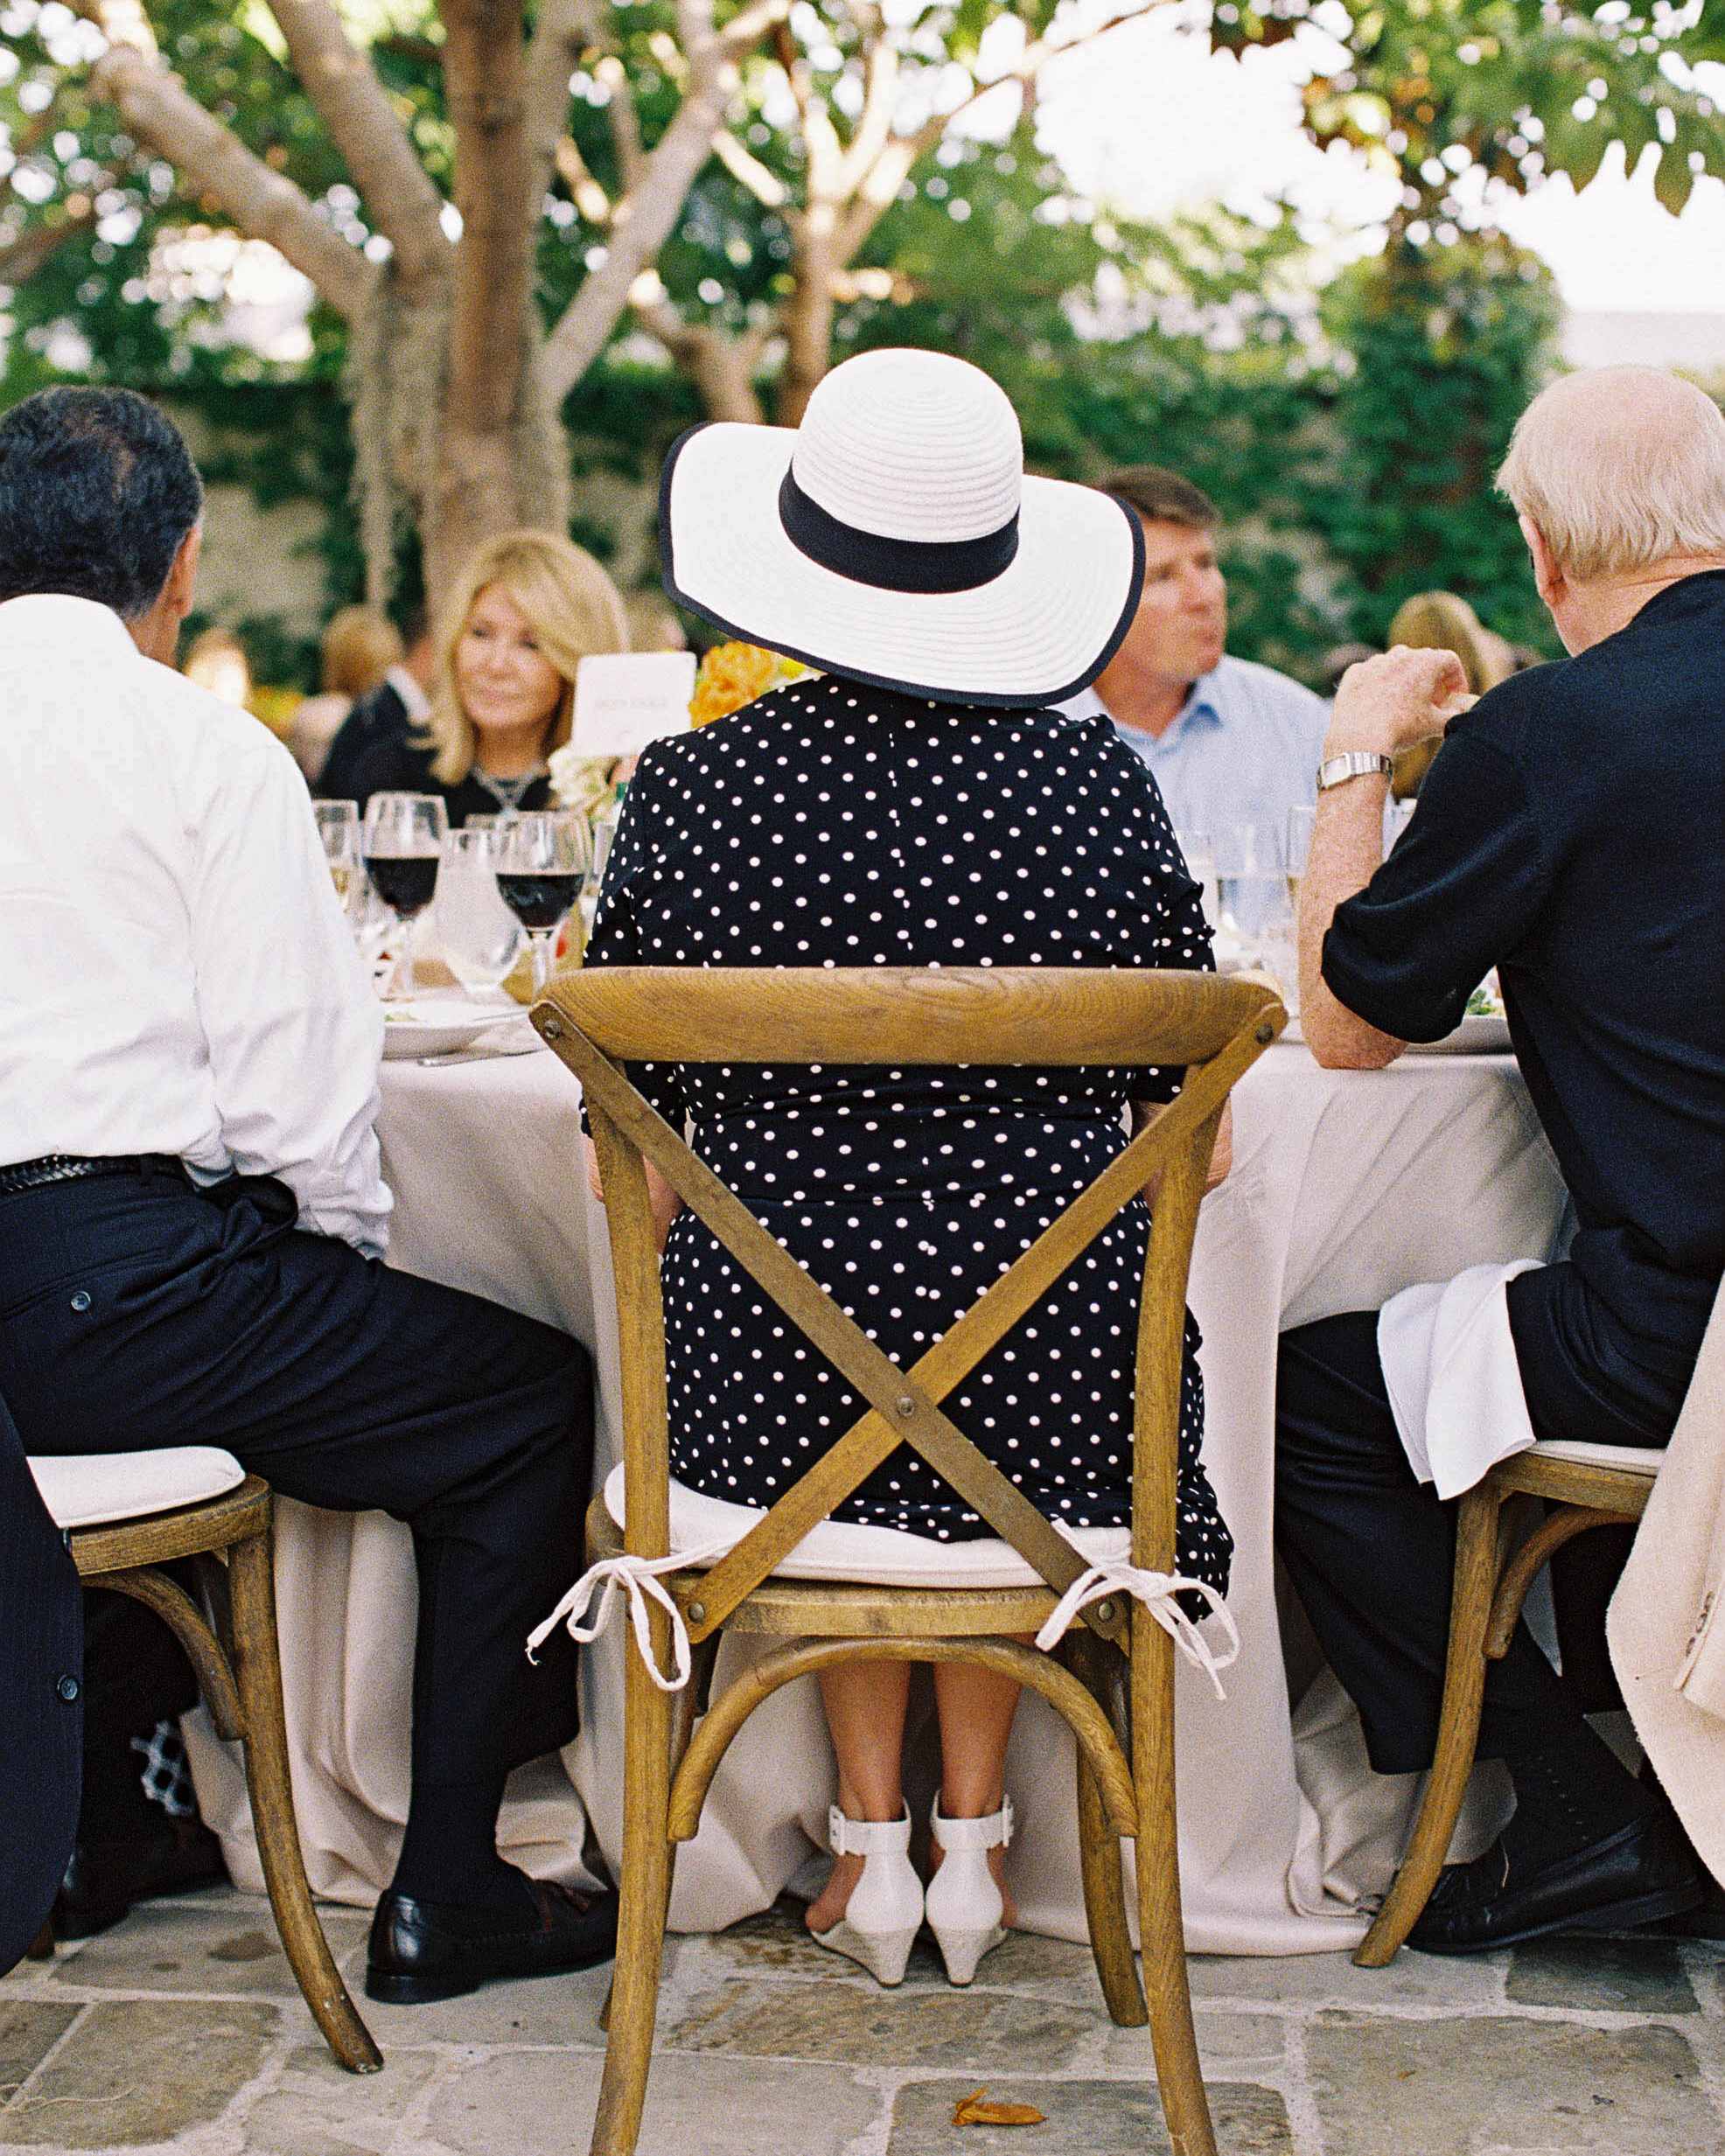 summer wedding guests polk dot black and white